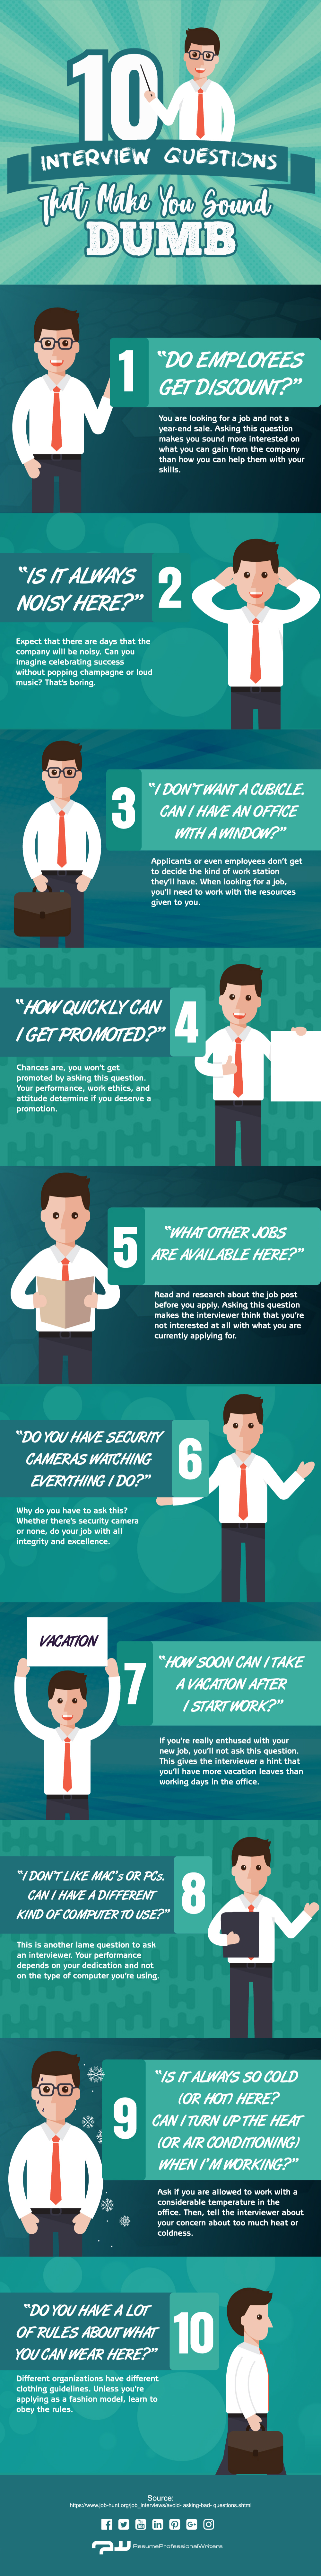 Be Careful About What Questions You Ask In Interviews! - Infographic